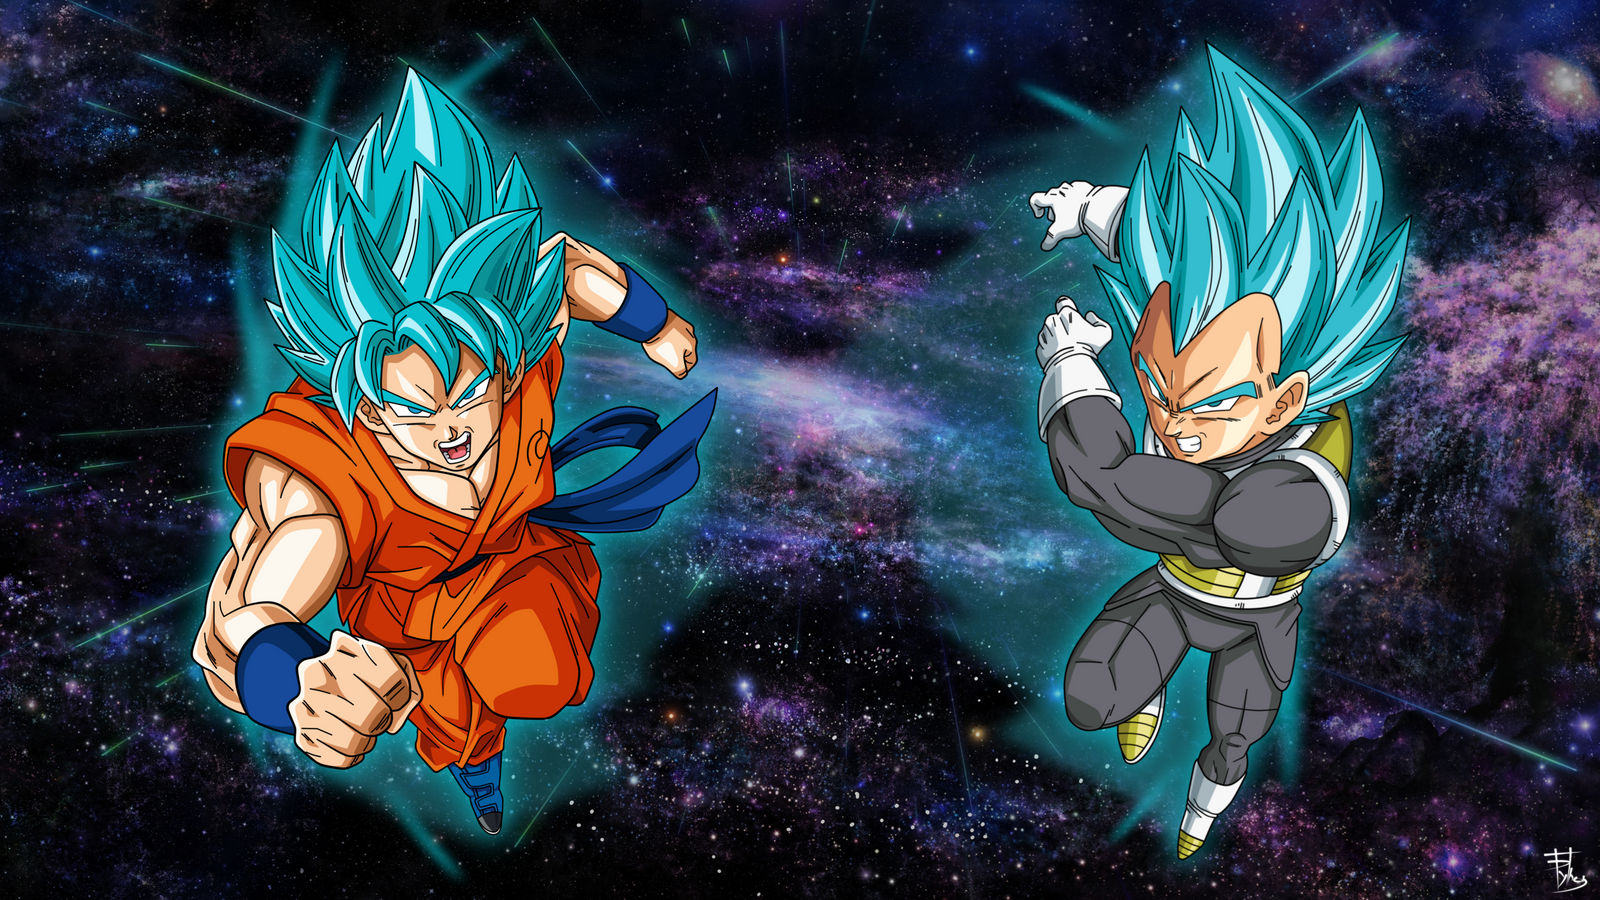 Dragon Ball Super Wallpaper 4k By Thepi7on On Deviantart